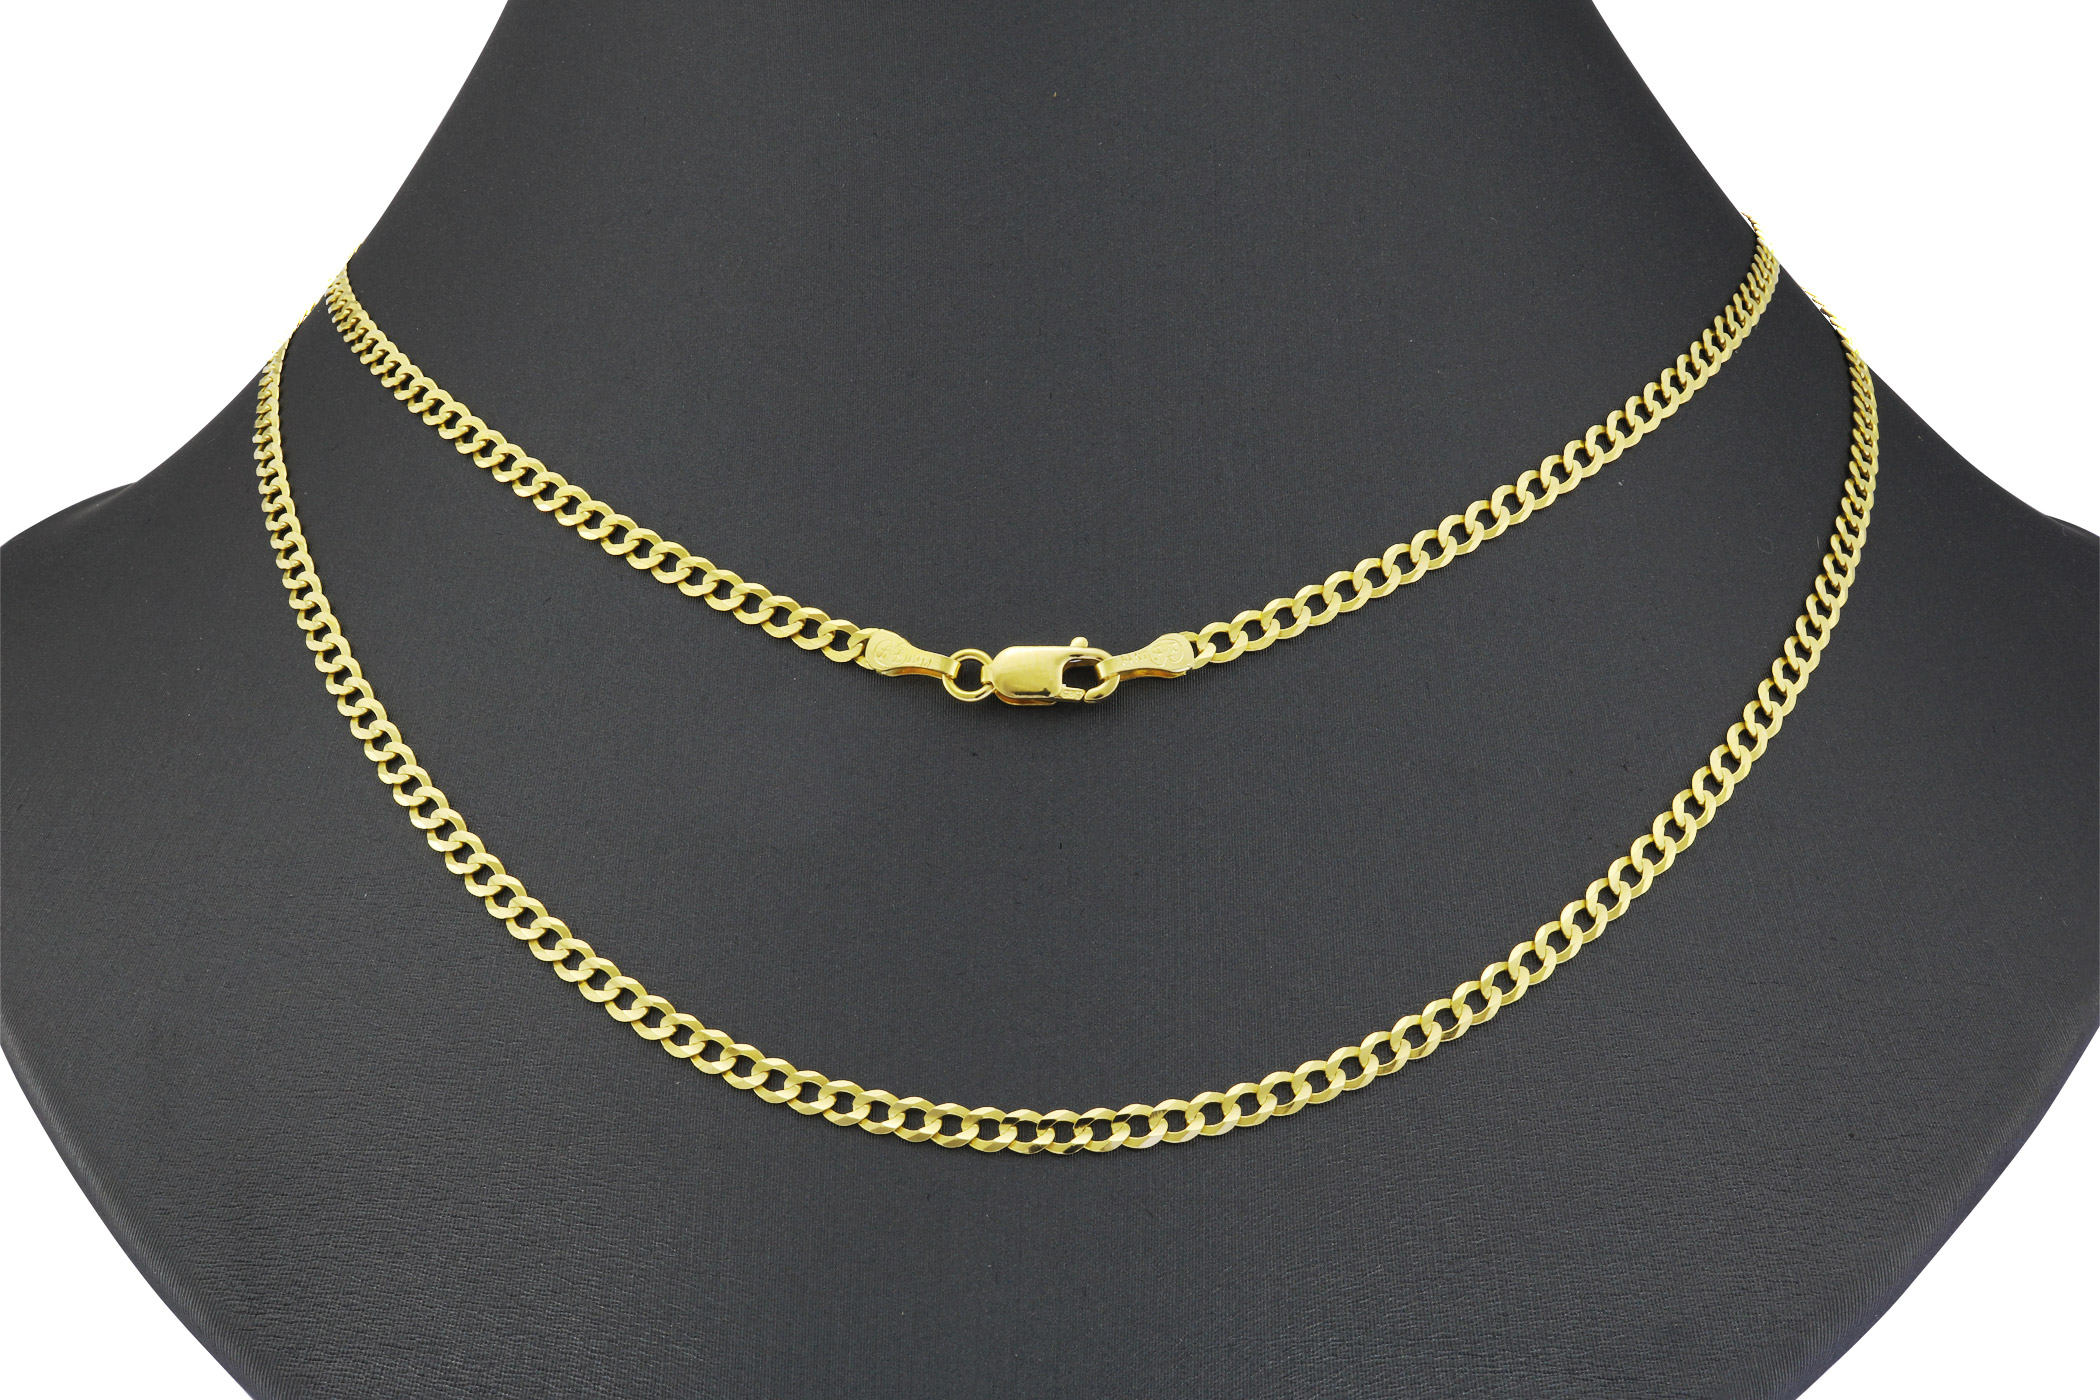 Real-14k-Yellow-Gold-Women-Solid-2-5mm-Curb-Cuban-Chain-Bracelet-or-Anklet-7-034-9-034 thumbnail 21